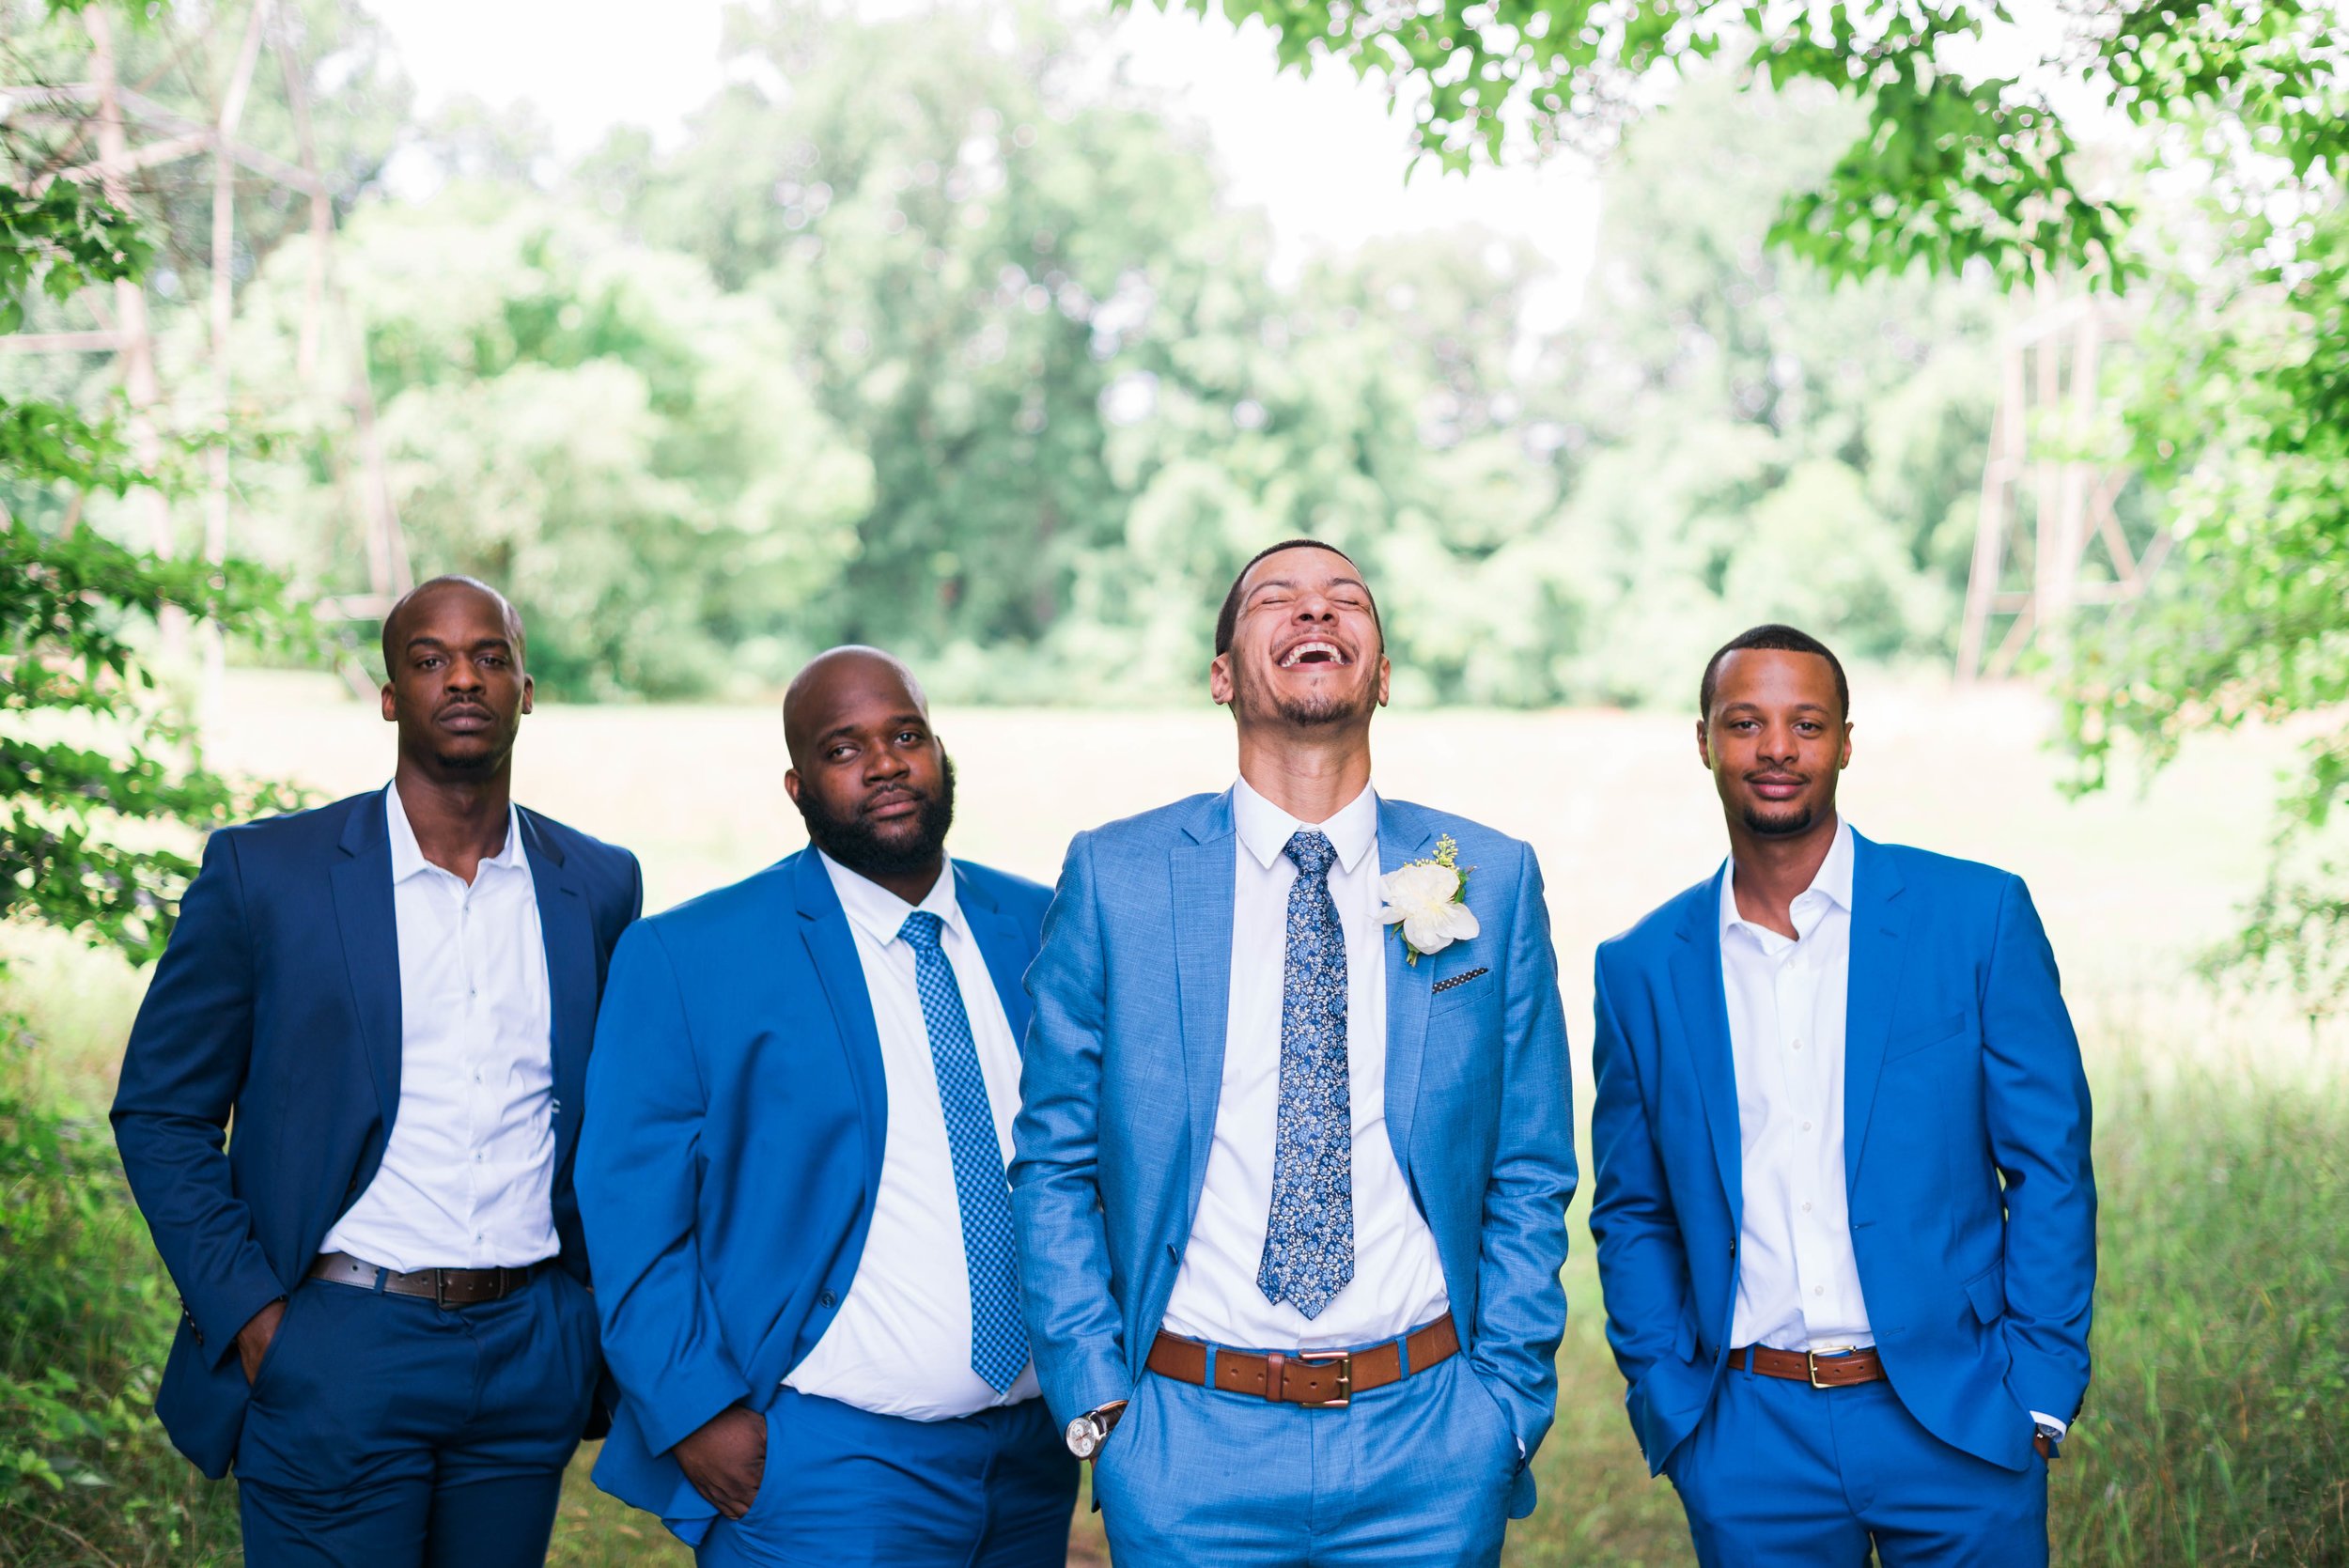 southern-maryland-clinton-wedding.icaimages2